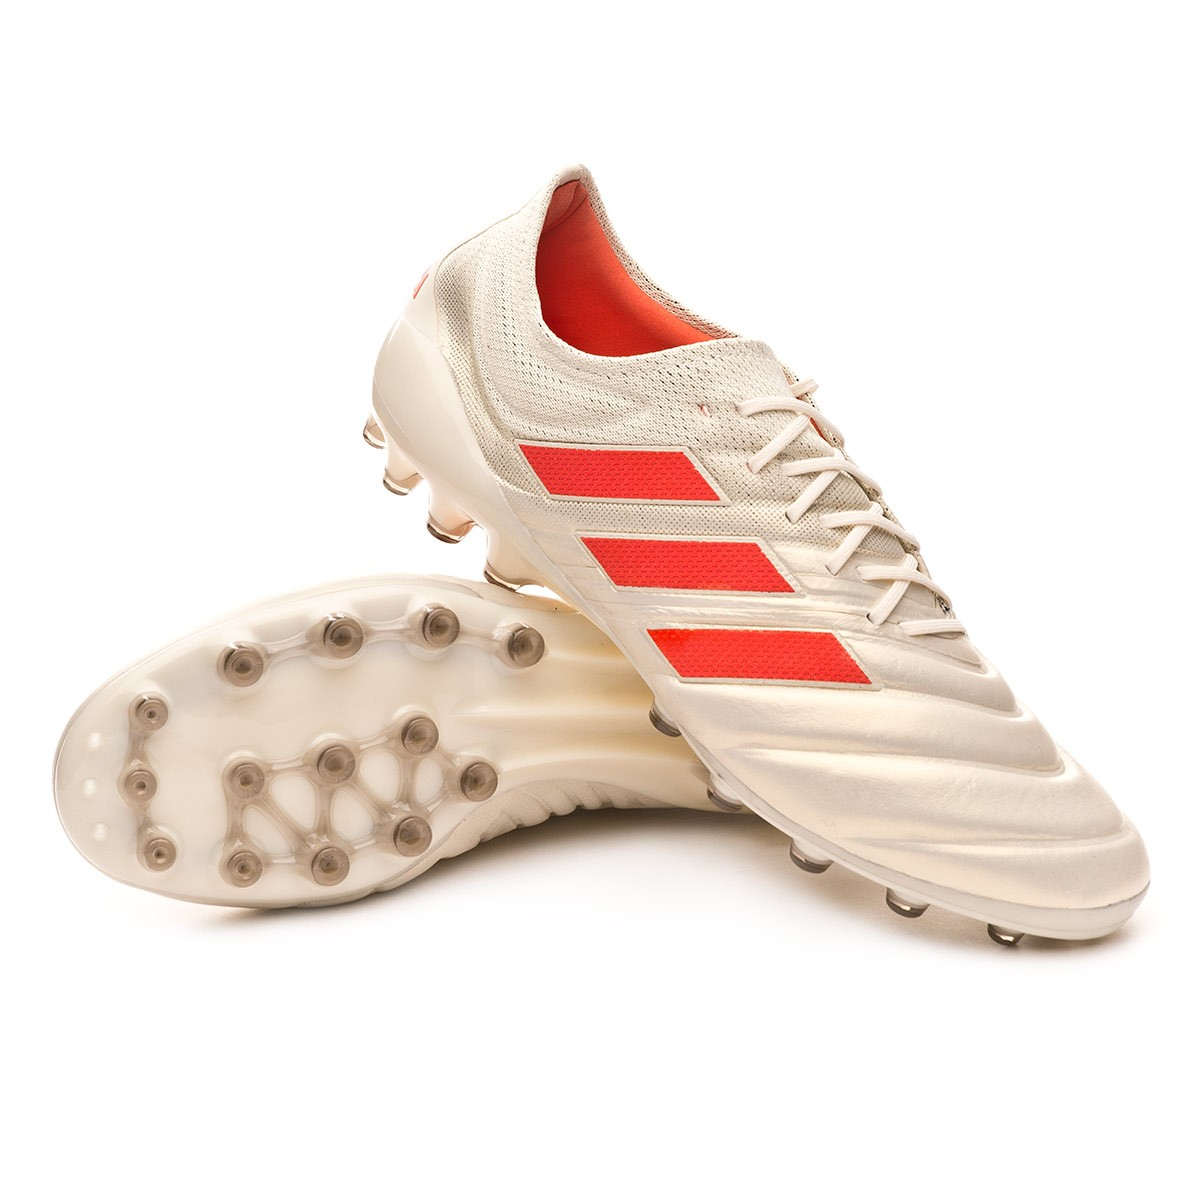 low priced 3ce05 e2c3c Football Boots adidas Copa 19.1 AG Off white-Solar red-Core black - Tienda  de fútbol Fútbol Emotion